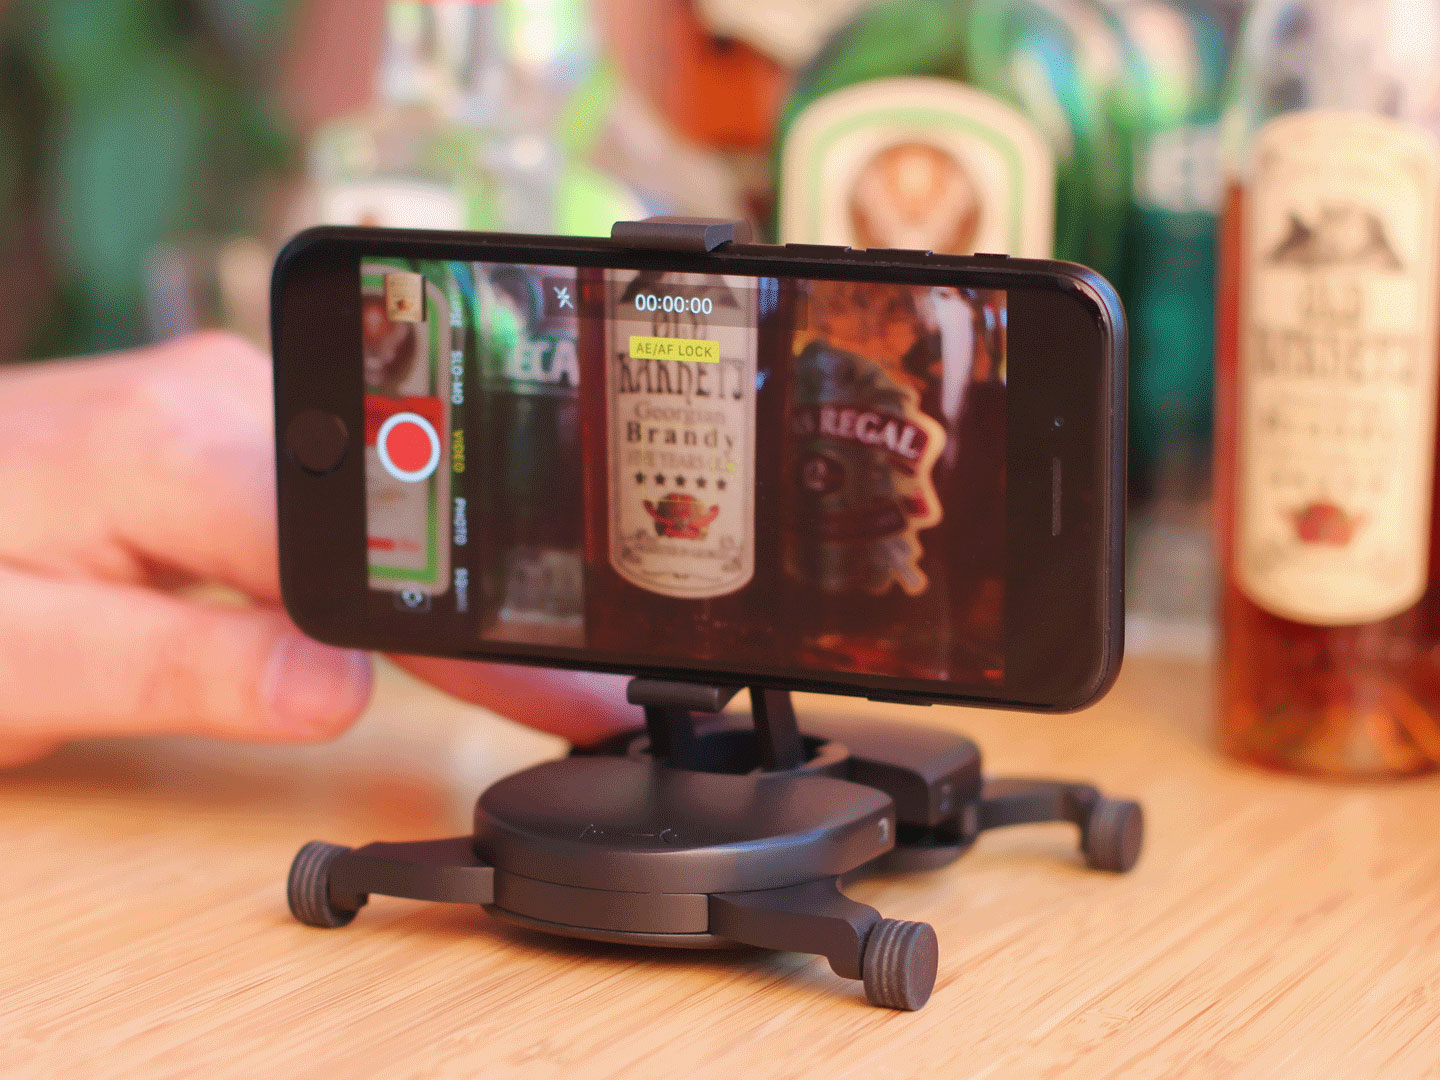 You can achieve linear and curved movements with your smartphone or camera.